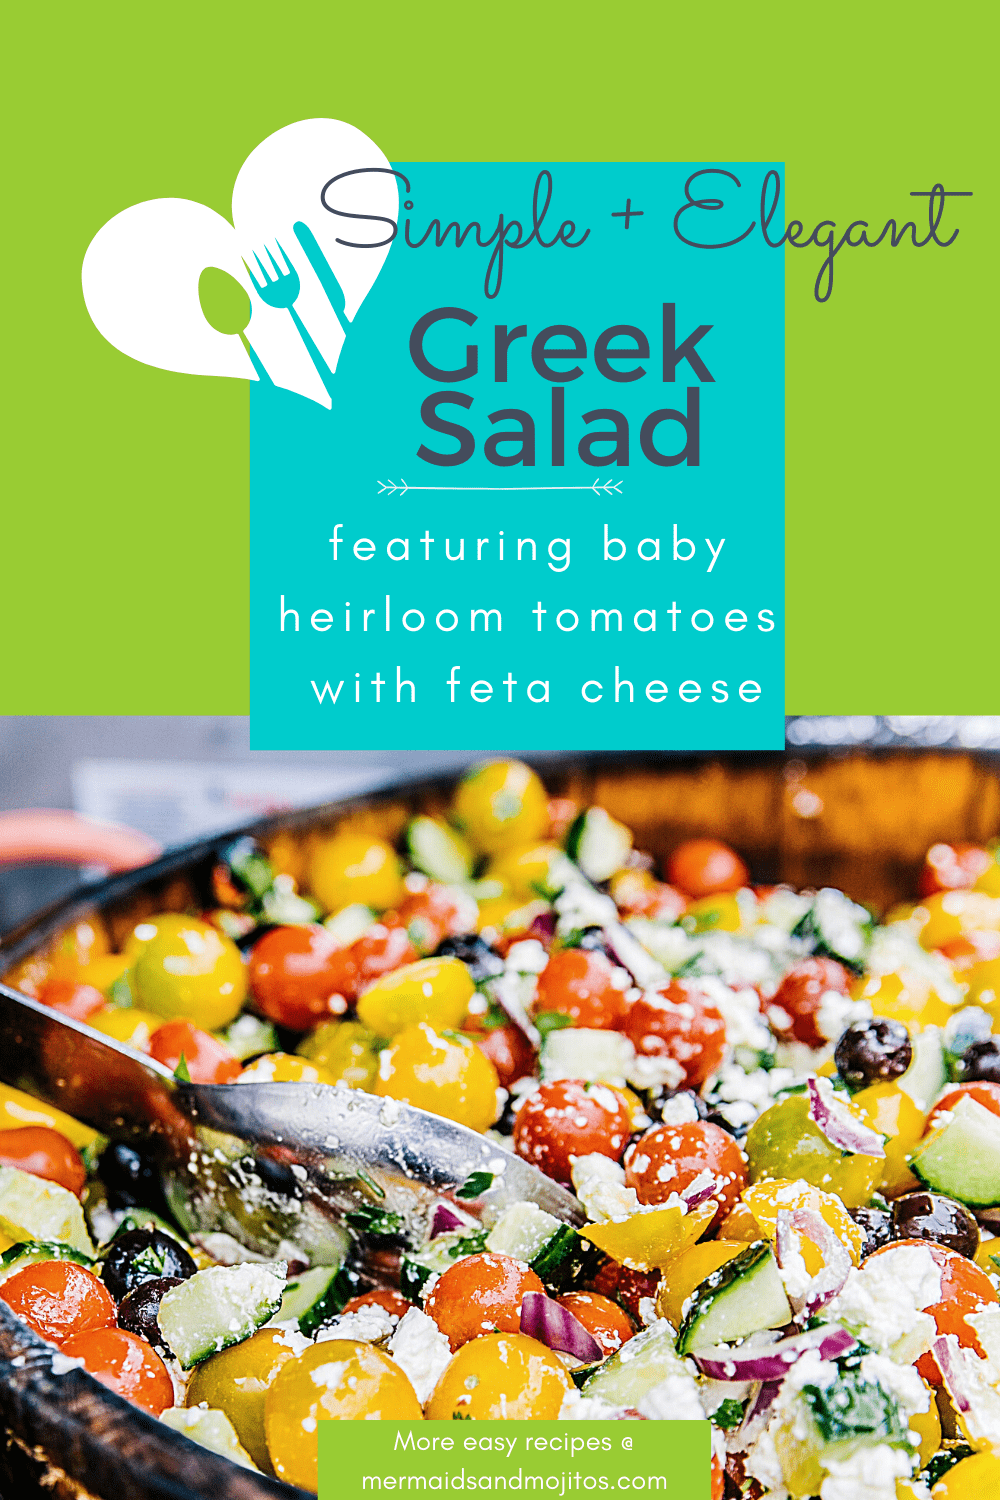 Heirloom Cherry Tomato Greek Salad is the perfect light summer salad.  The vibrant colors and flavors pair perfectly with grilled meats, chicken, and fish. via @mermaidsandmojitos